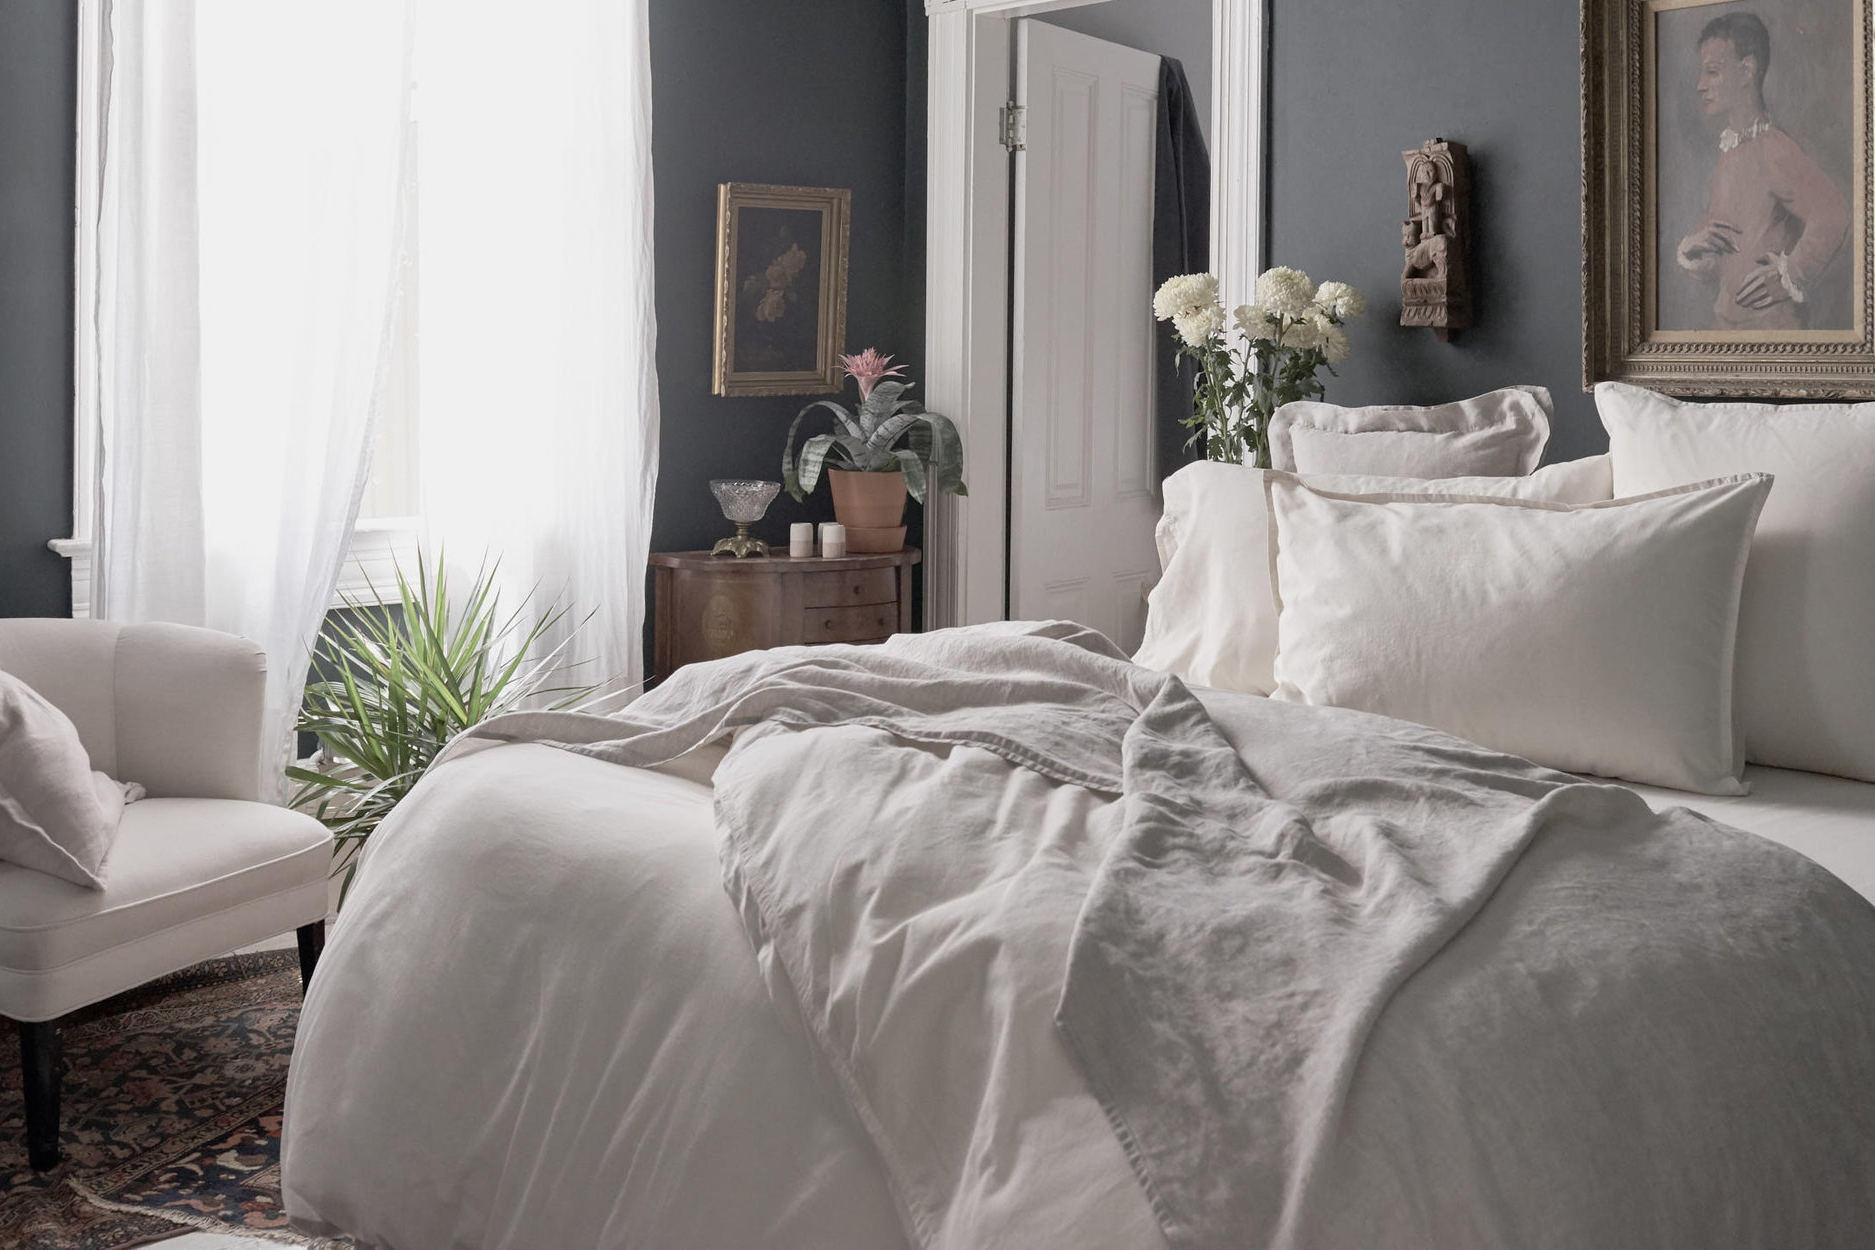 Matteo Los Angeles - Chic and high quality linens. I love their simple white duvets.